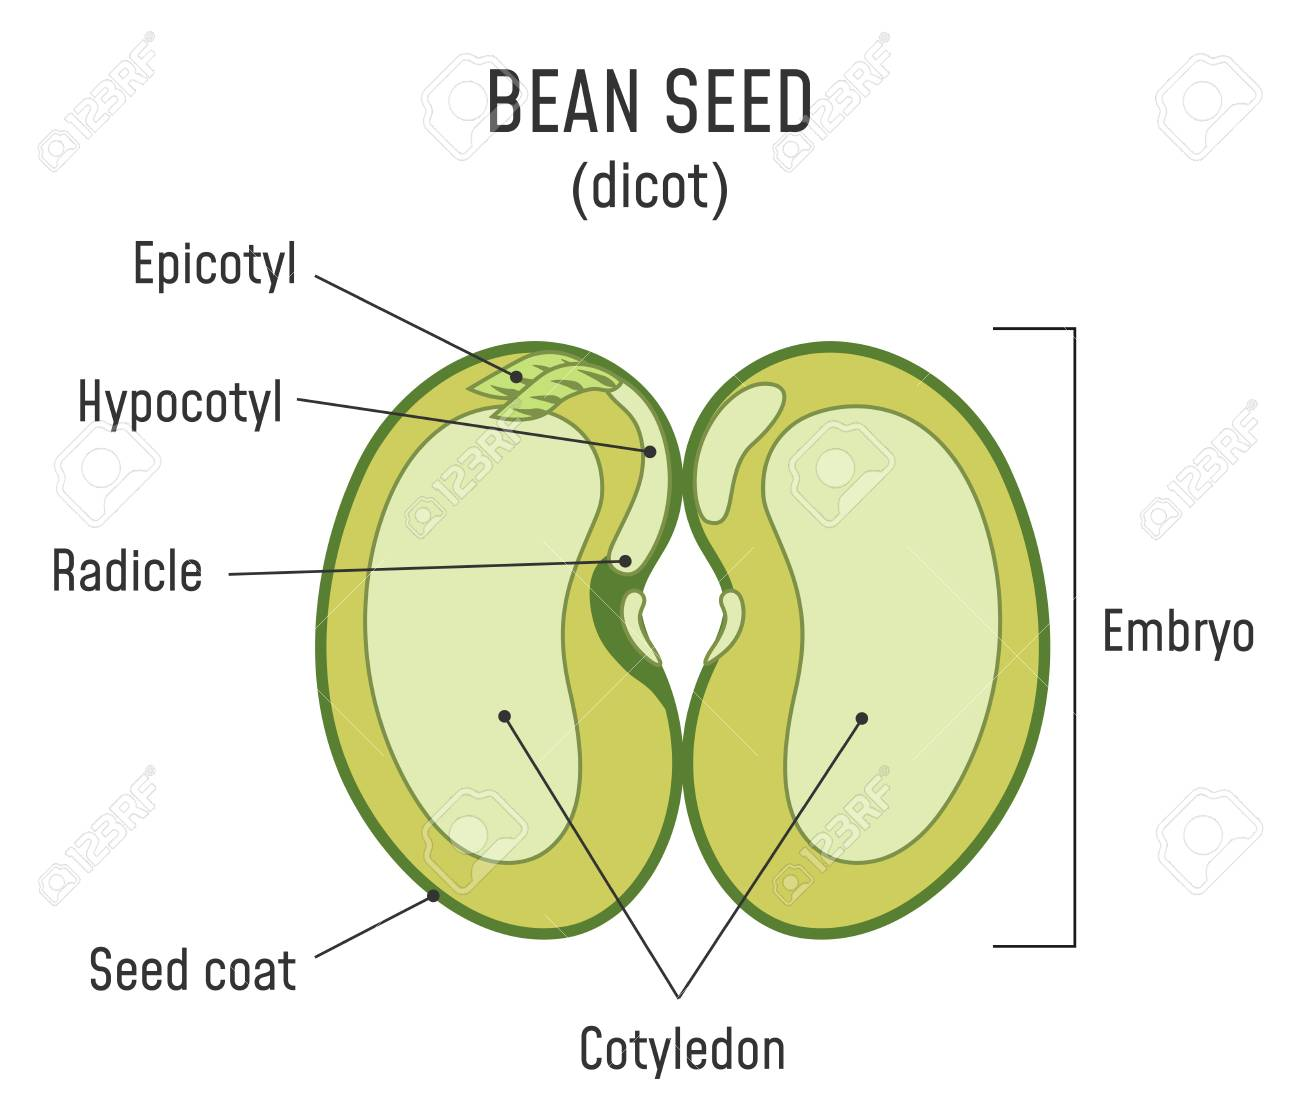 hight resolution of bean seed structure anatomy of grain dicot seed diagram stock vector 124796334